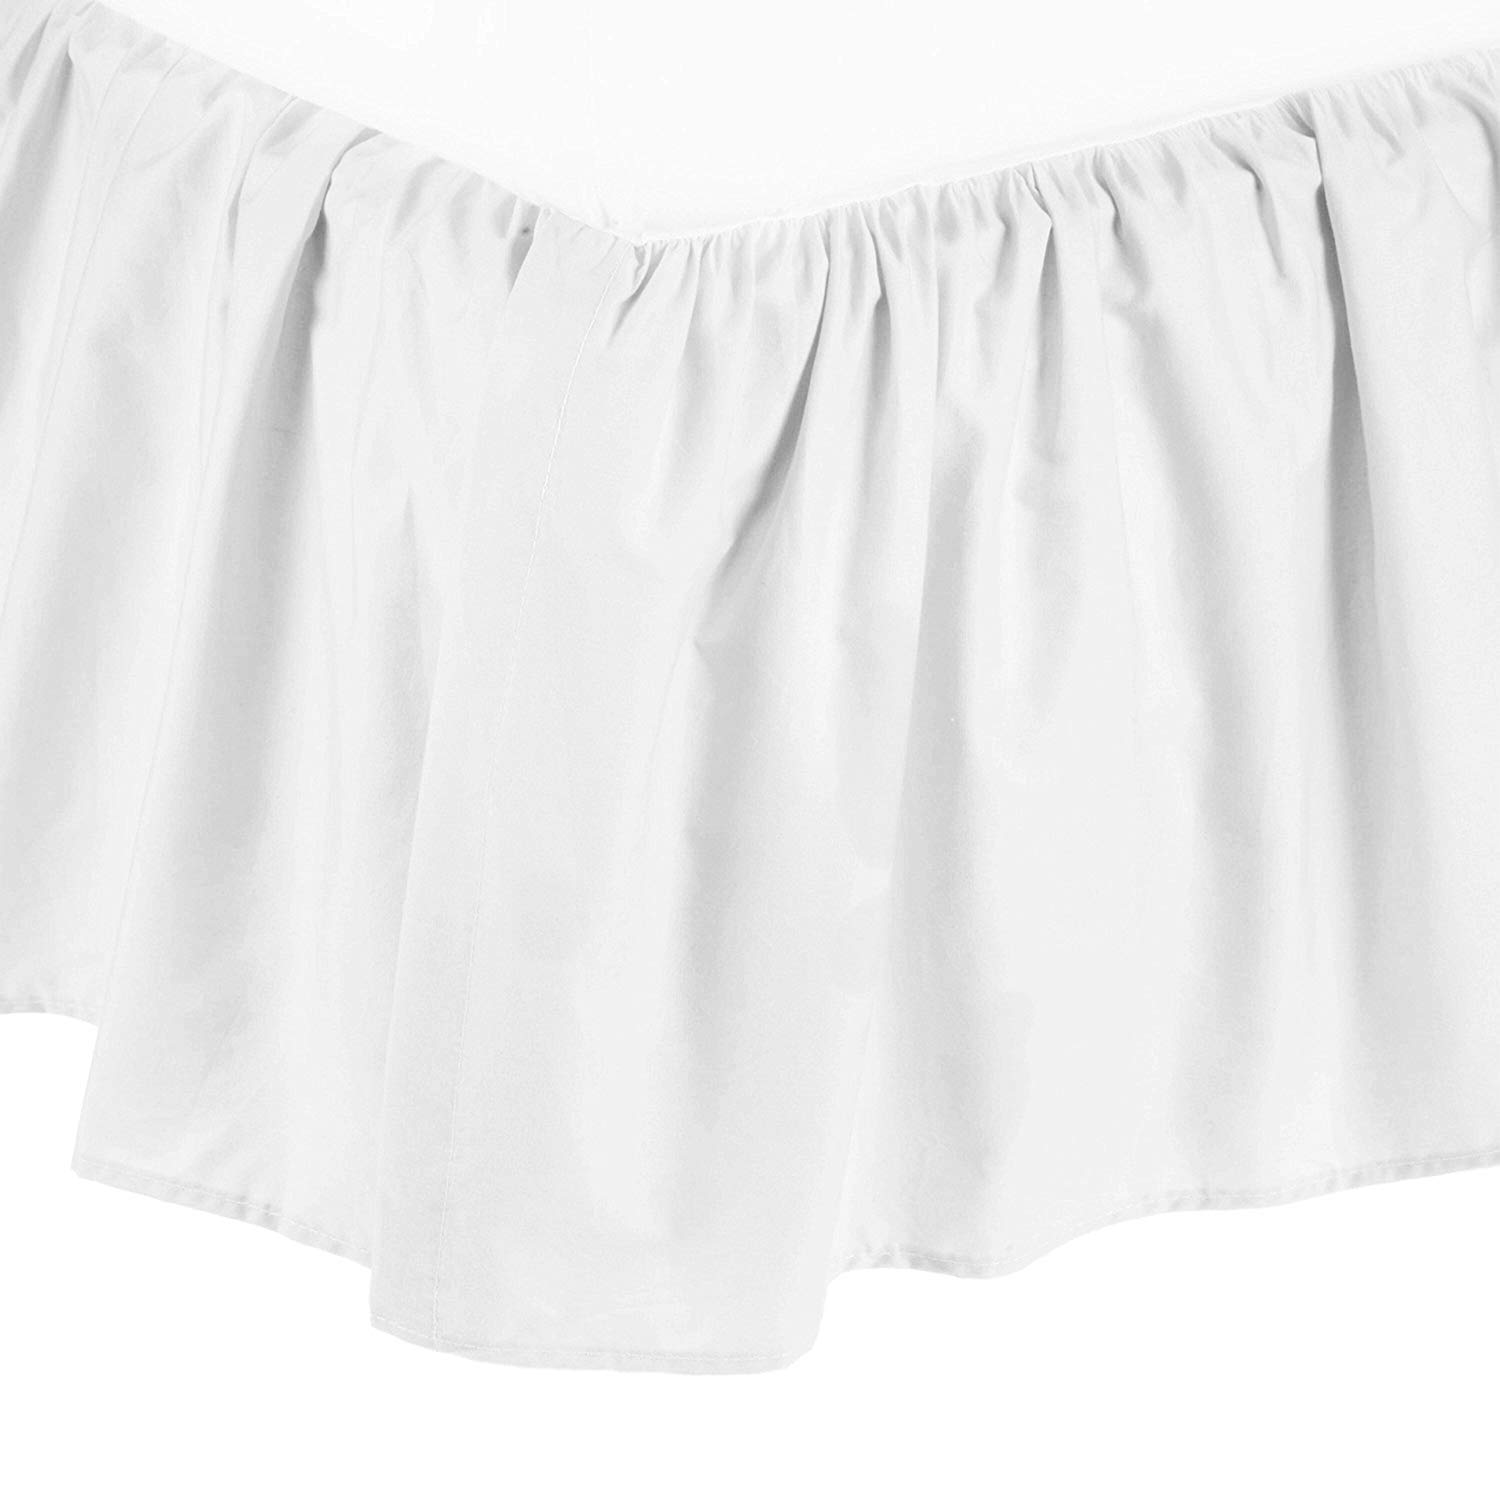 American Baby Company Microfiber Skirt in White